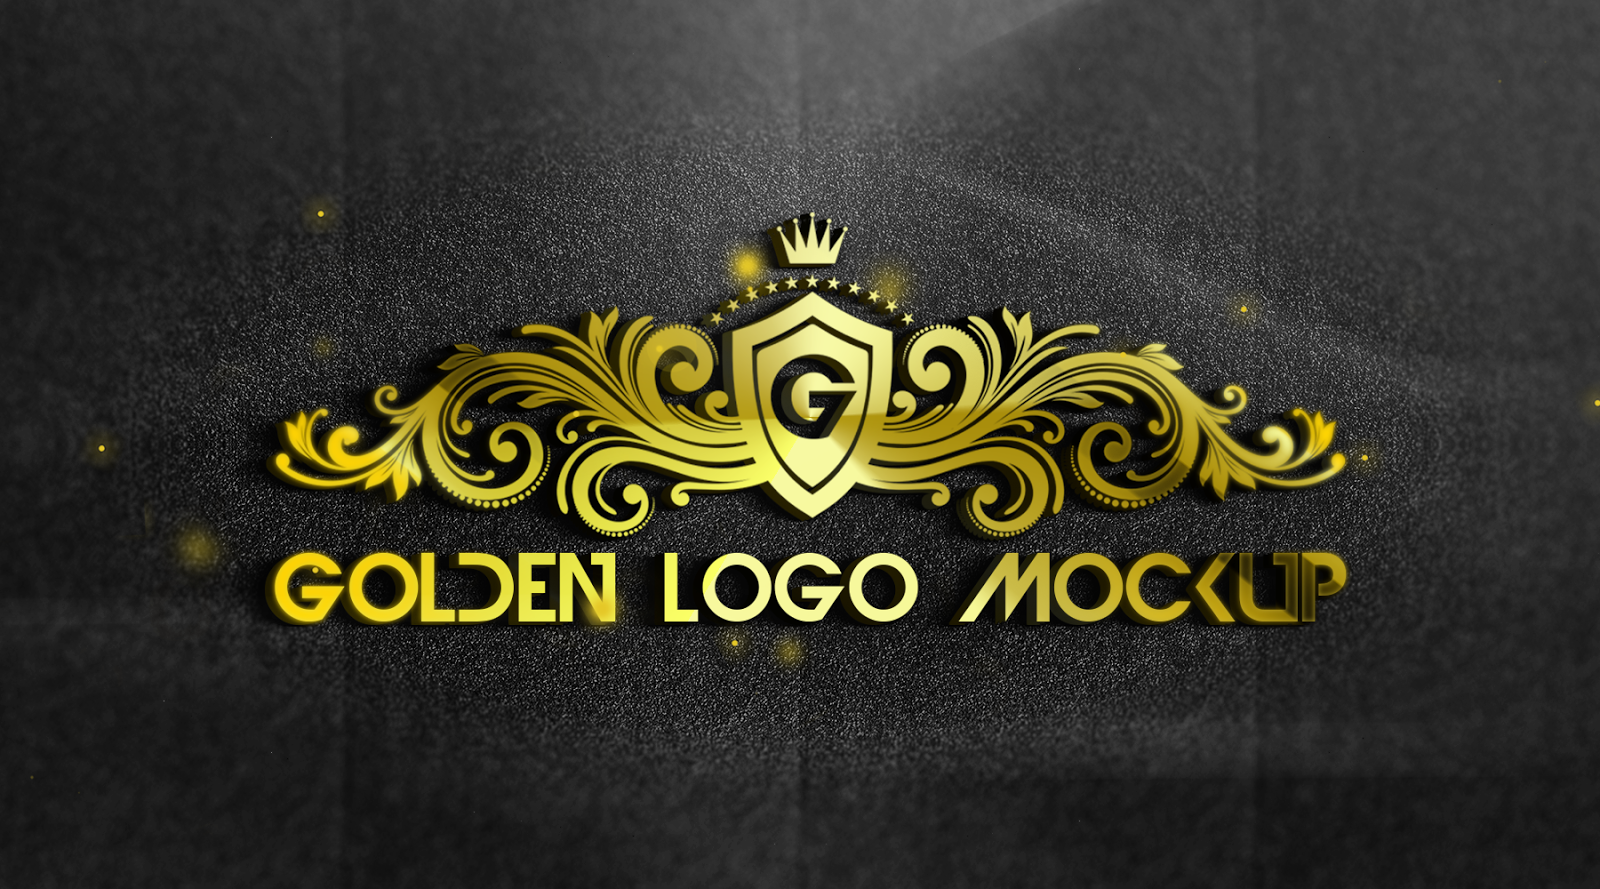 Share 2 PSD Realistic 3D Mock-up (Golden)